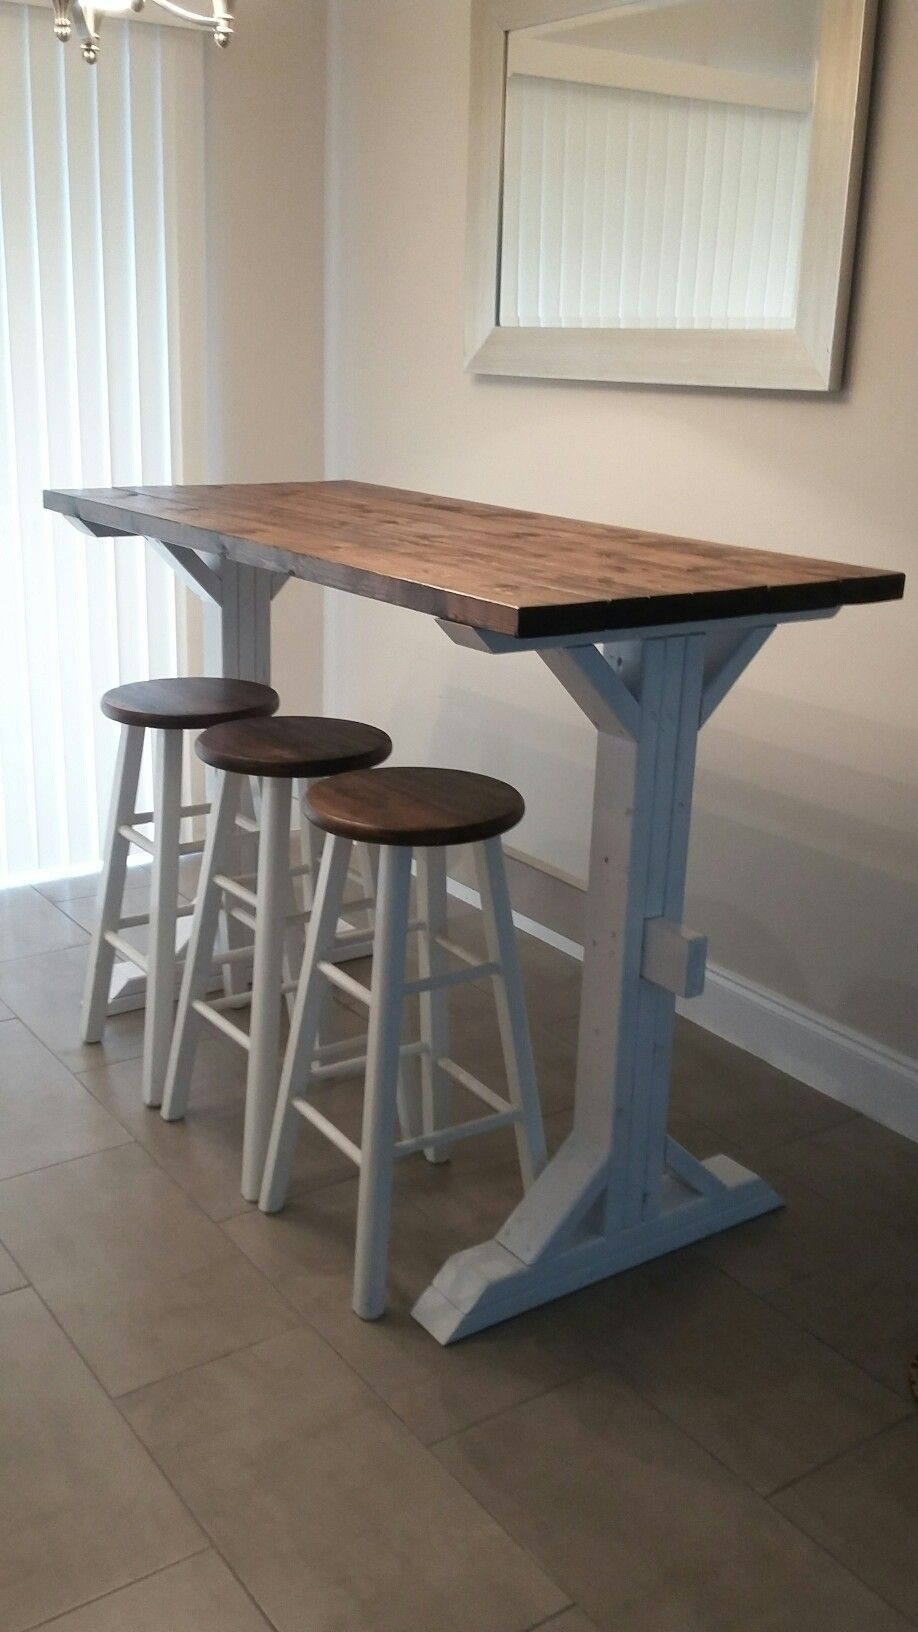 9 reference of bar stool Homemade table in 9  Kitchen bar